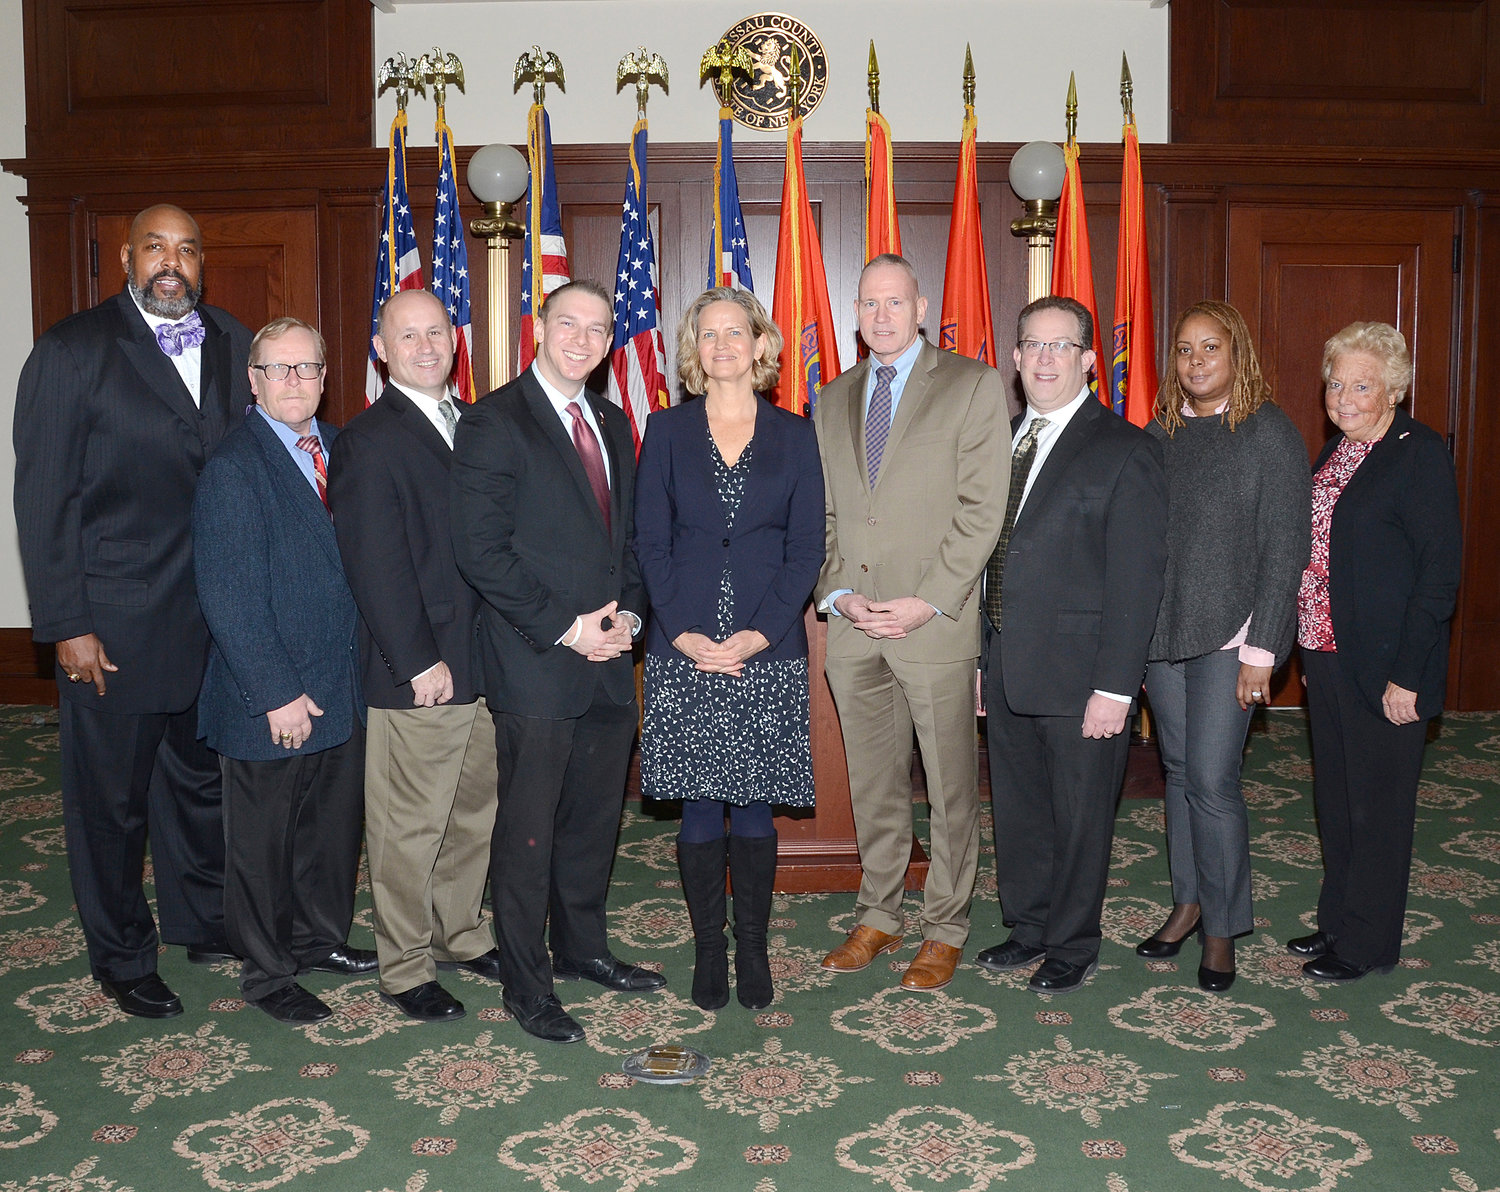 Nassau County Executive Laura Curran, center, recently created a task force to study the potential impacts legal marijuana might have on the county.